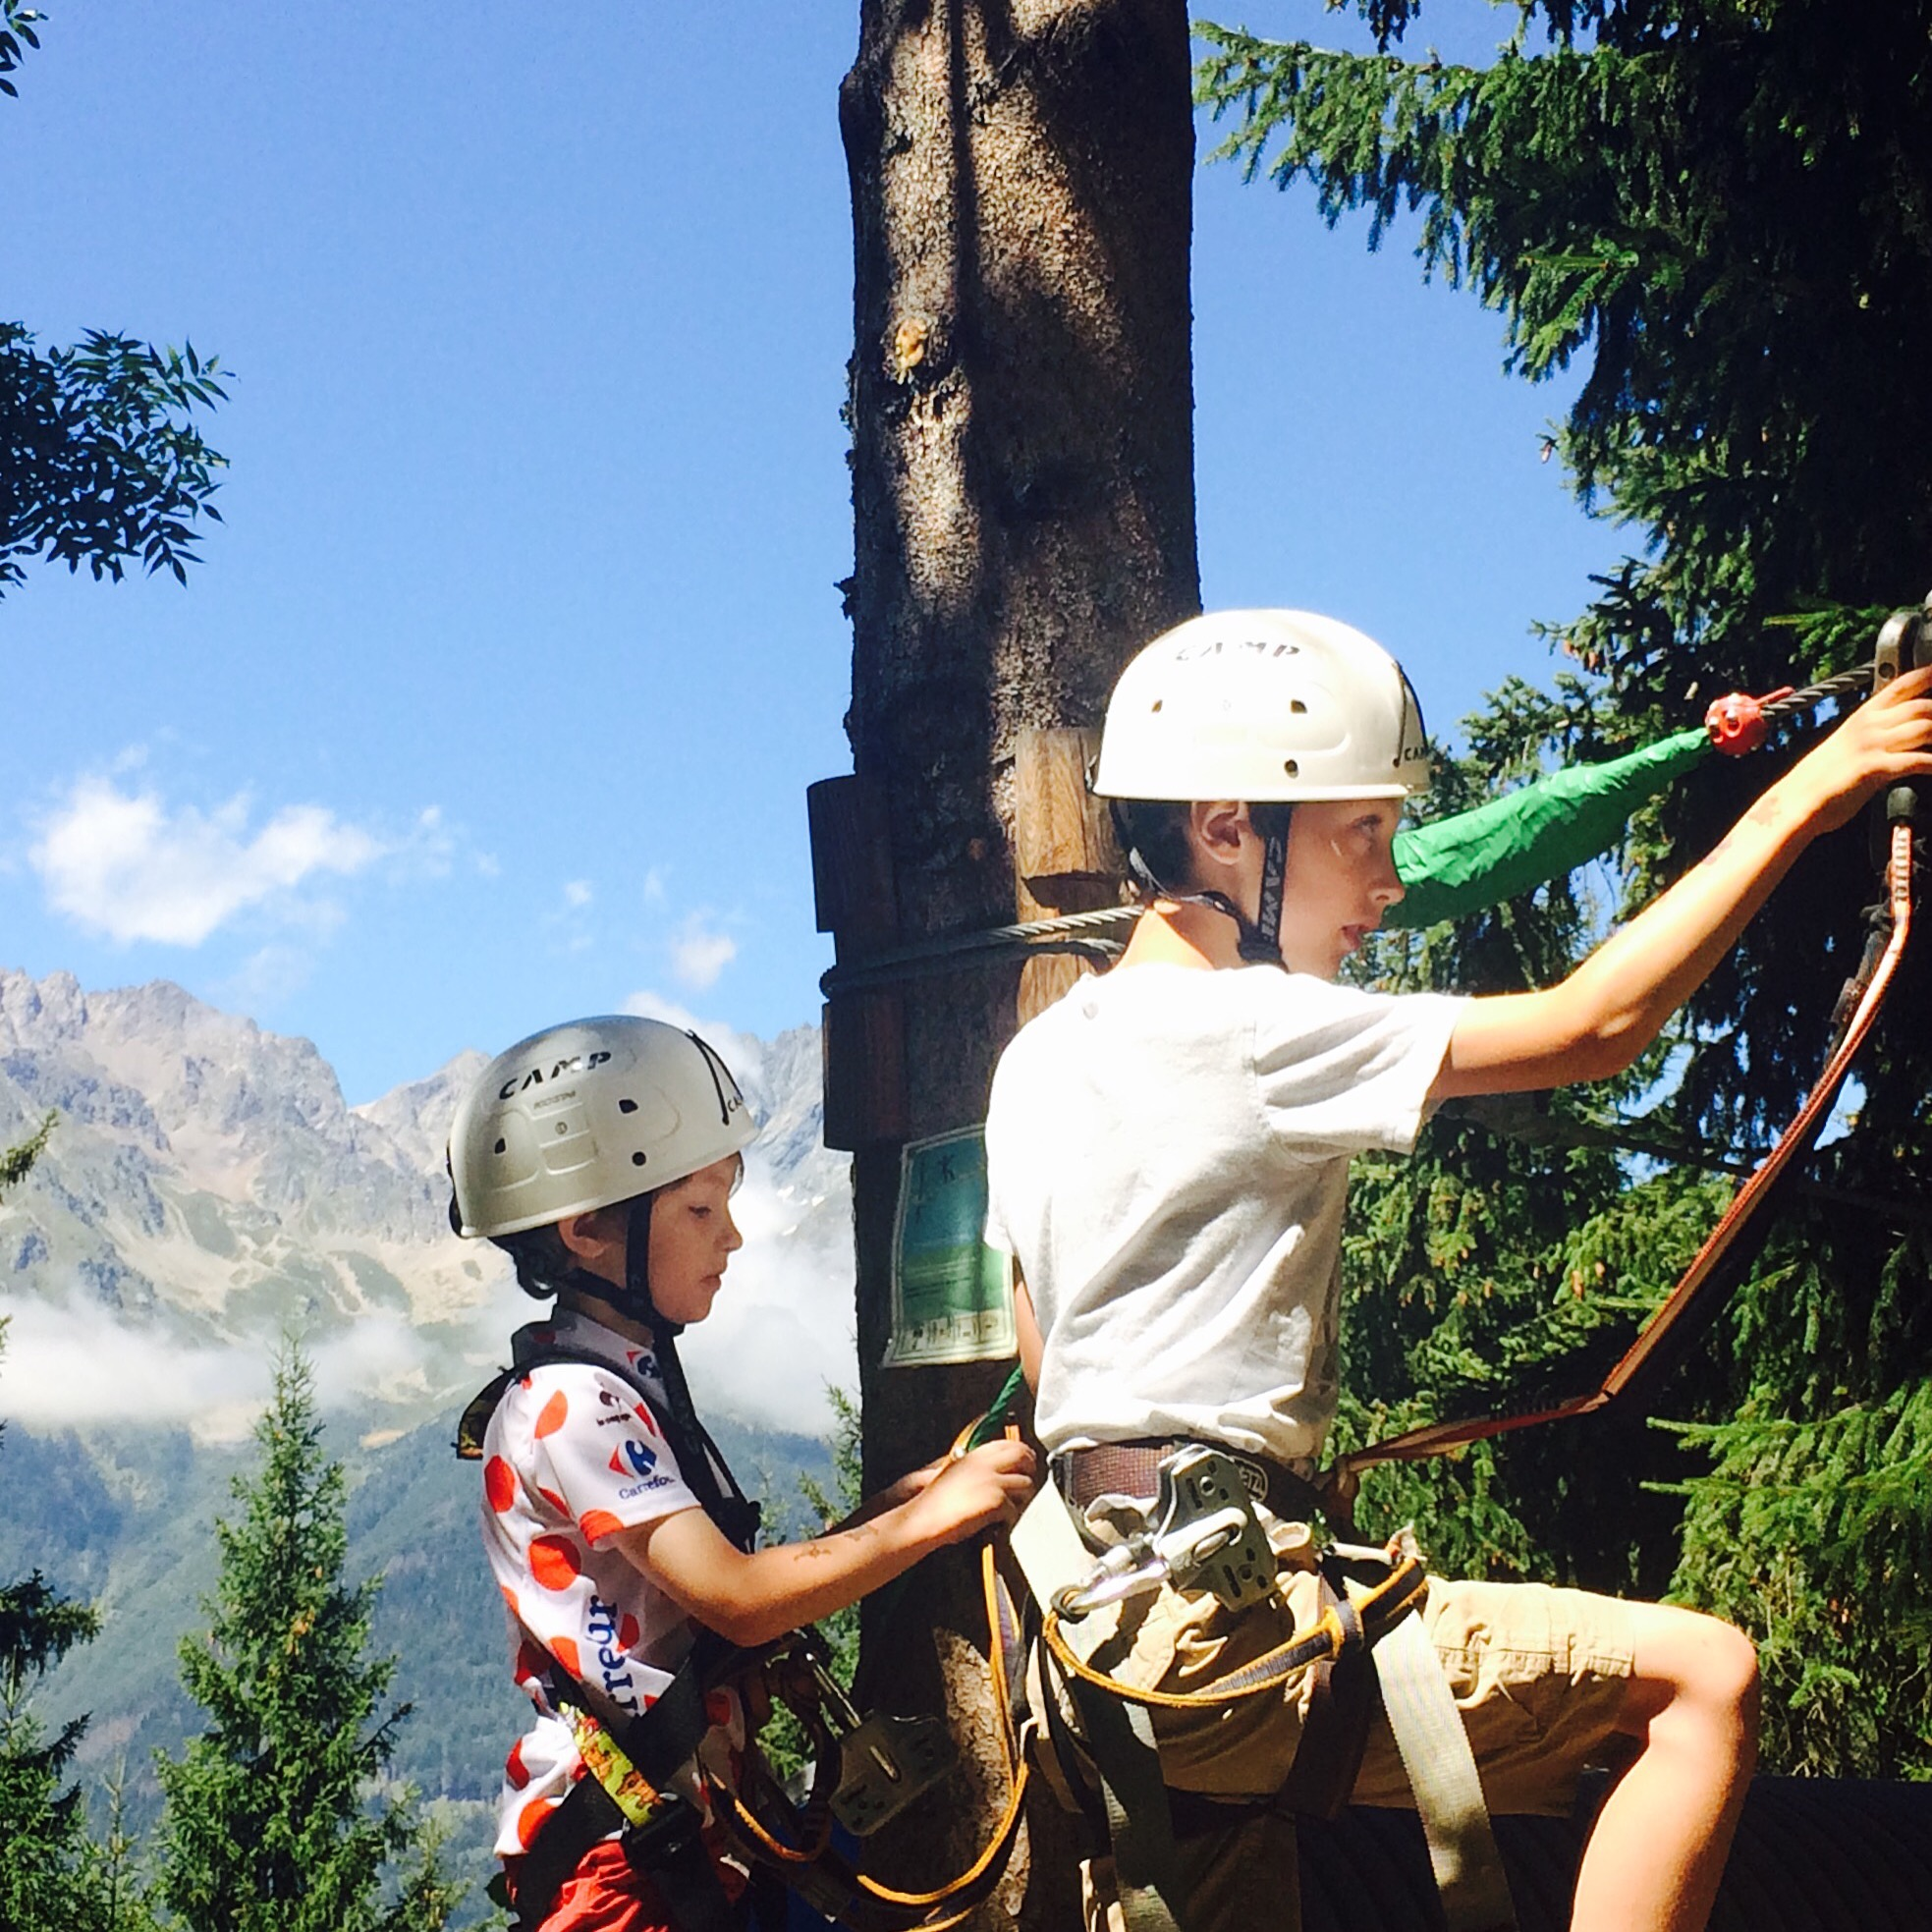 Vaujany's answer to Go Ape!